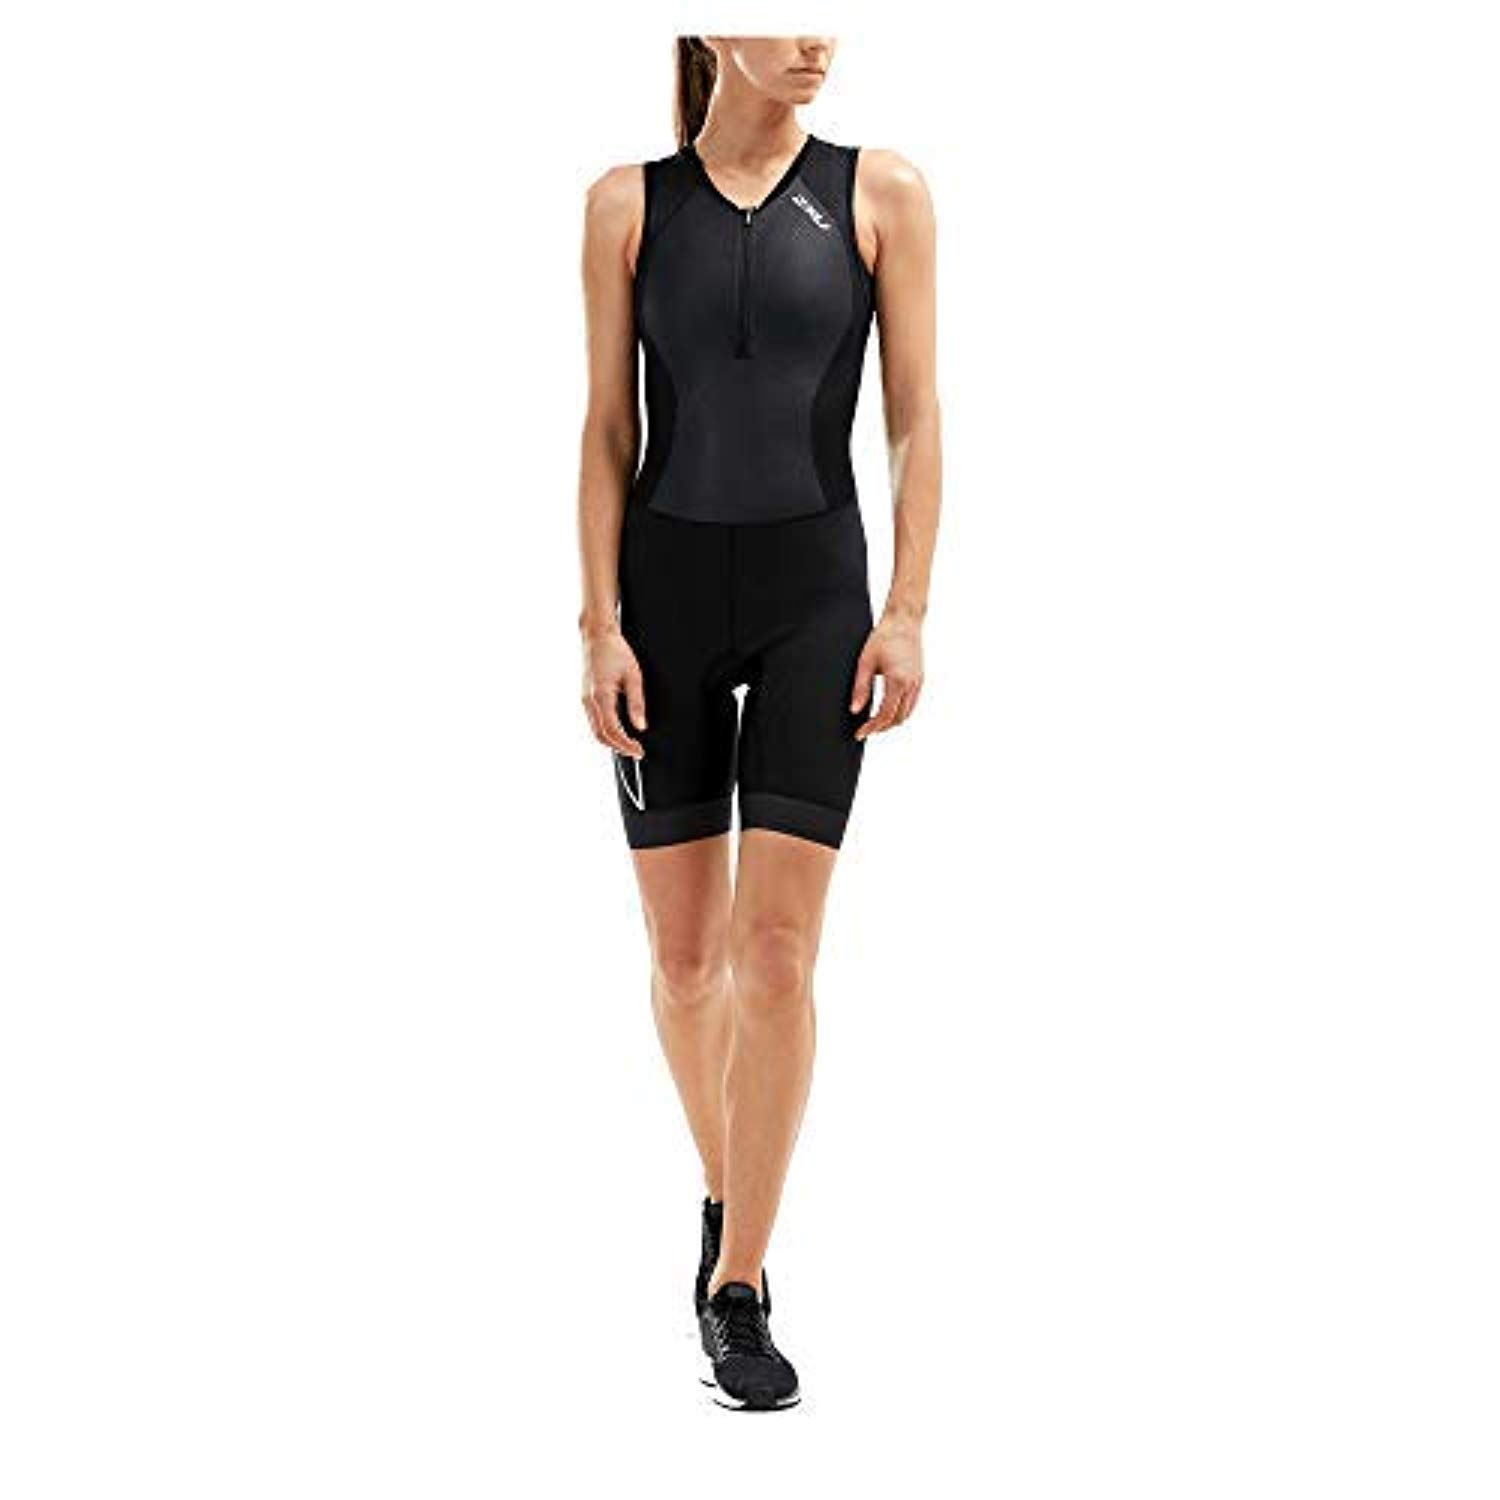 2XU Women's Compression Trisuit Black/Black XXS